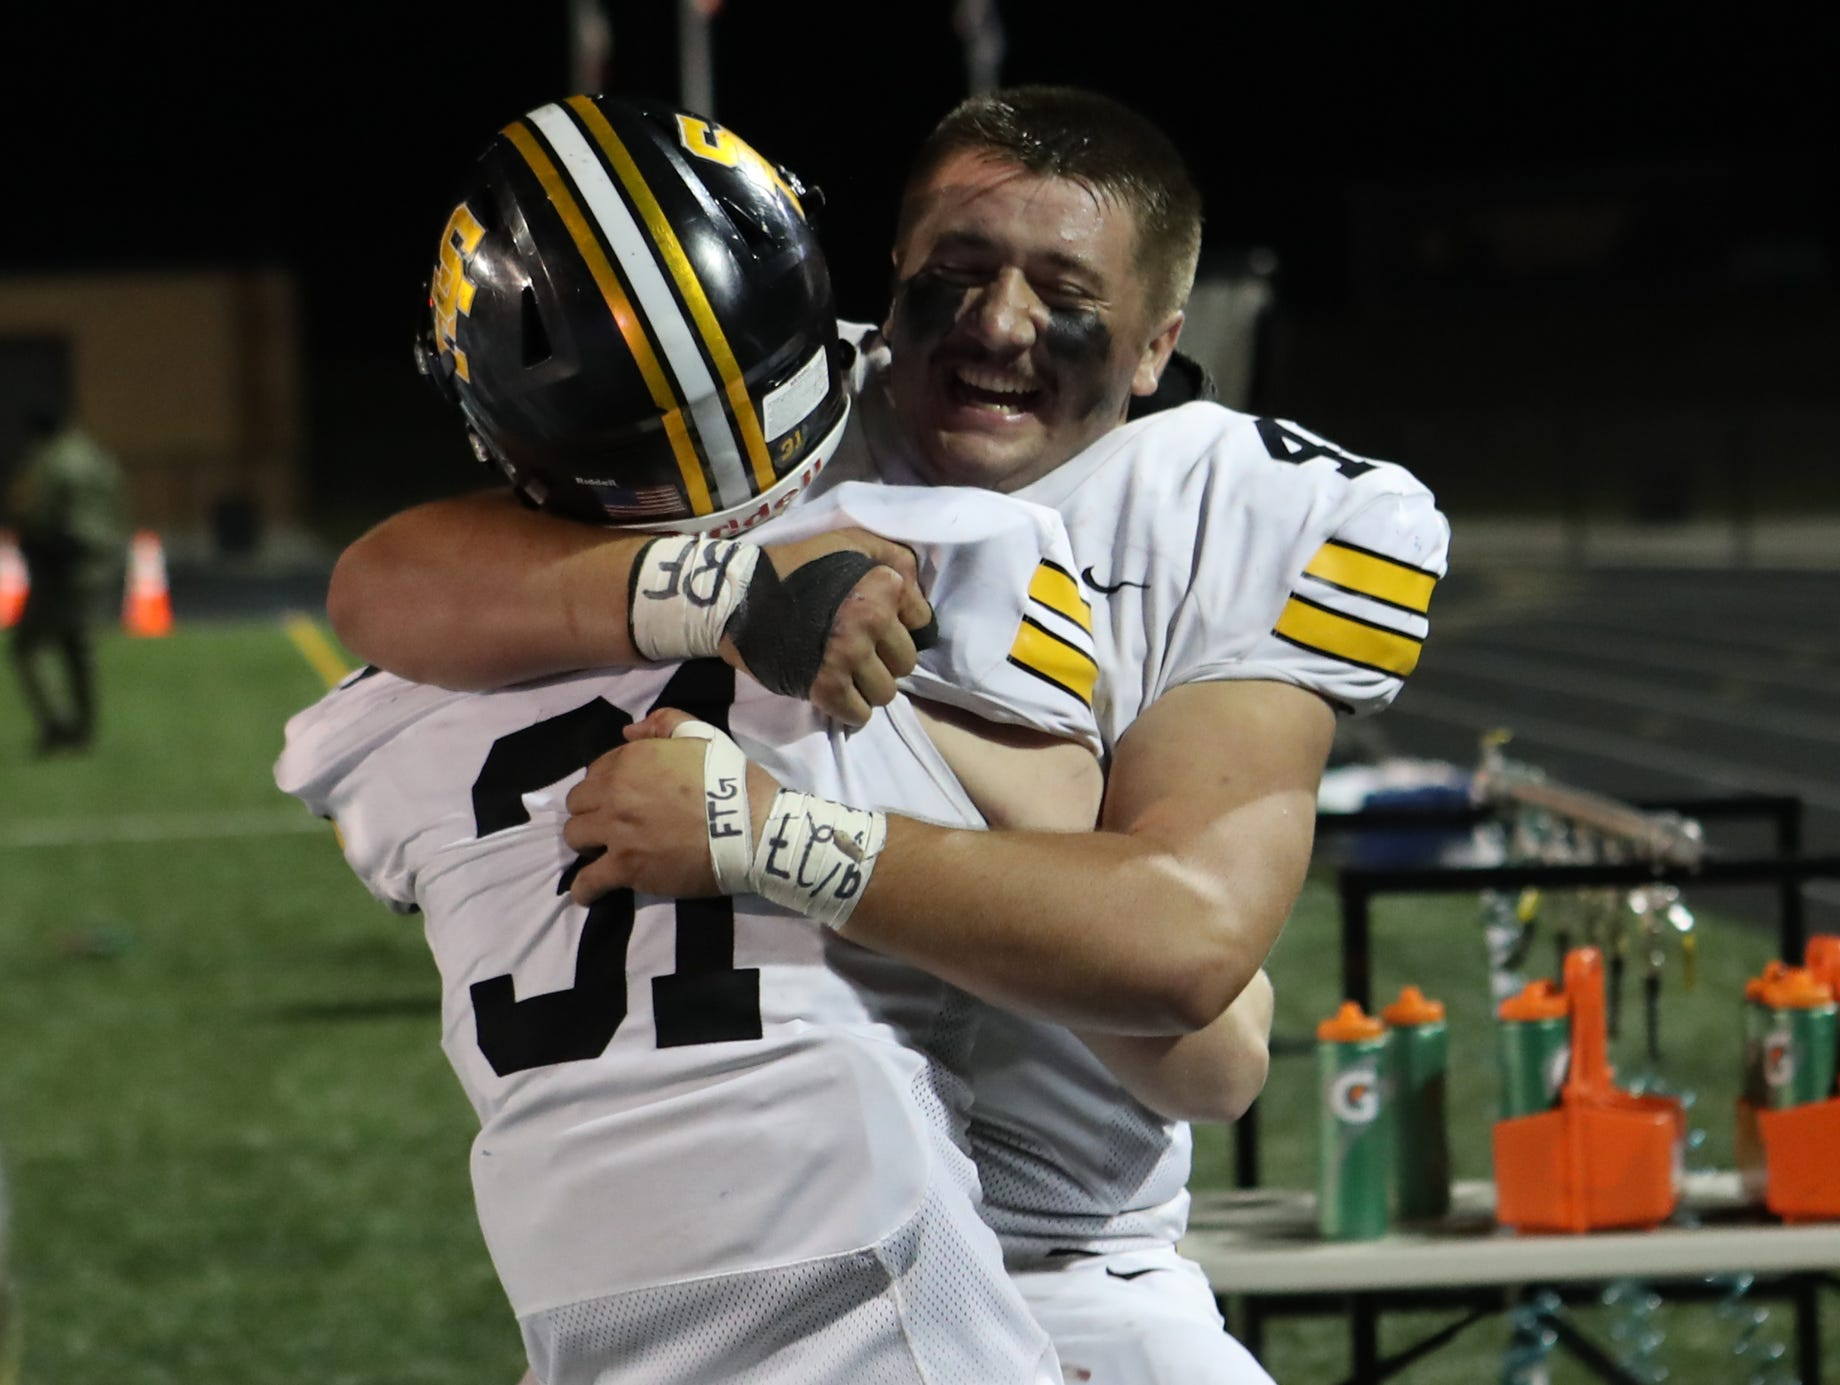 Nov 2, 2018; Johnston, IA, USA;  Southeast Polk Rams Bo Ira (48) and Southeast Polk Rams Carter Olesen (31) celebrate their win over the Johnston Dragons at Johnston Stadium. The Rams beat the Dragons 21-7.